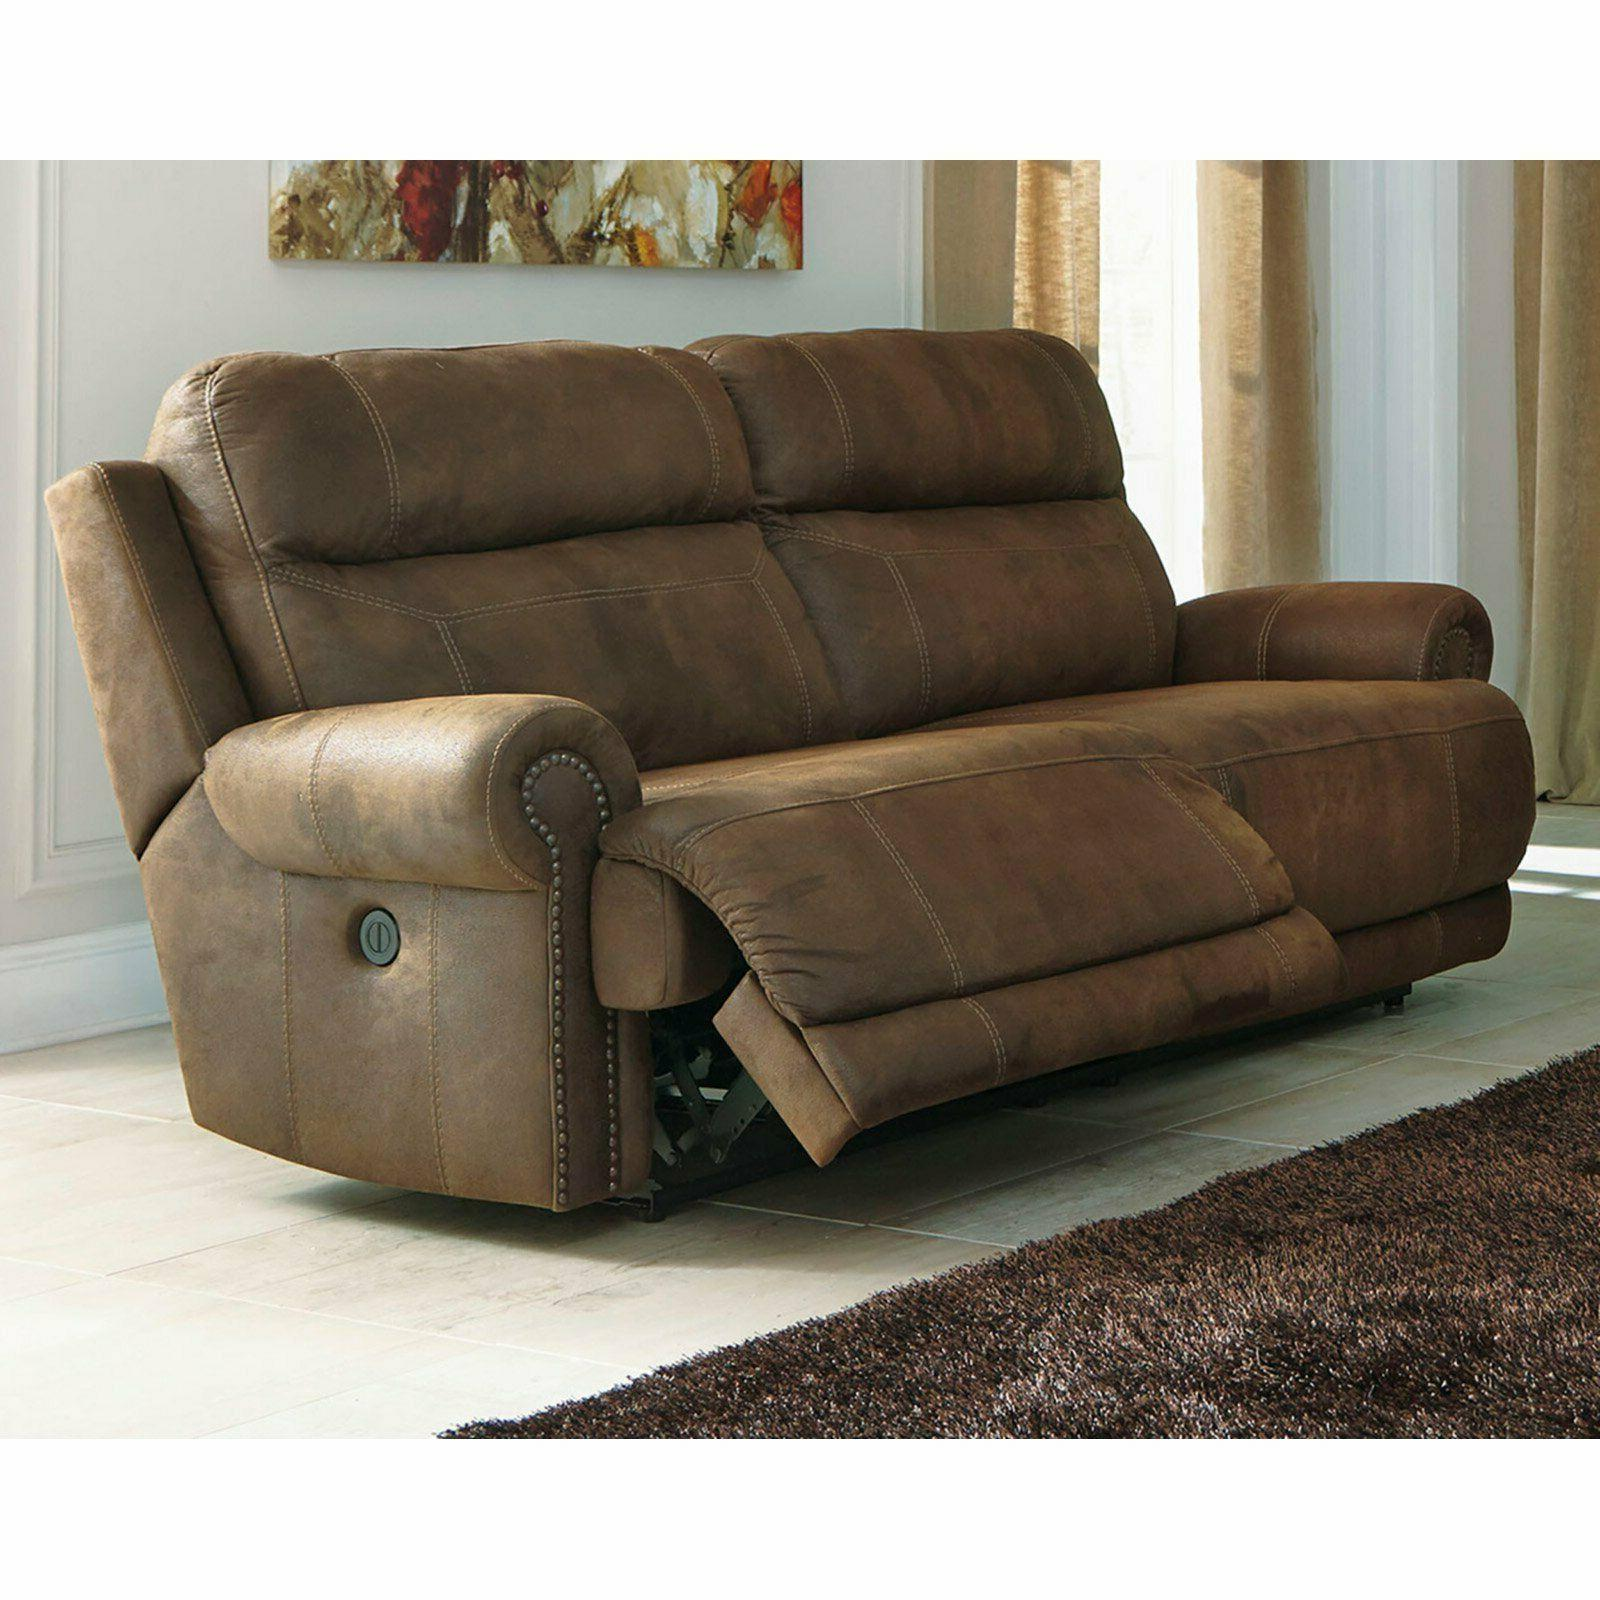 Signature Design by Ashley Austere 2-Seat Reclining Power So